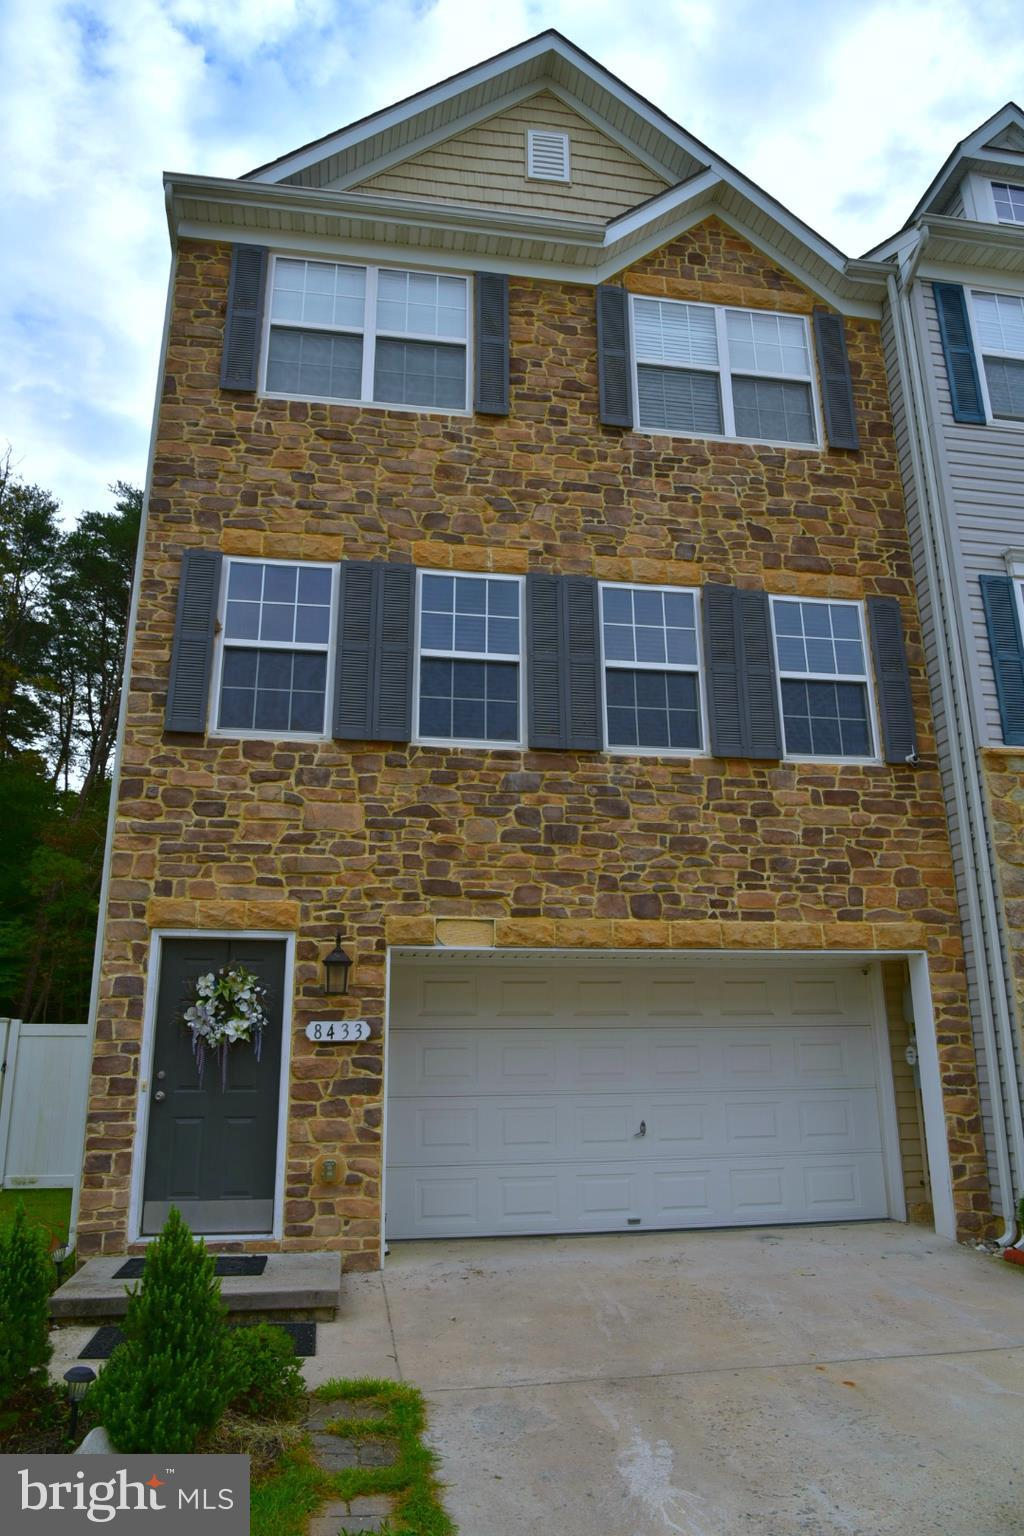 8433 WINDING TRAIL, LAUREL, MD 20724